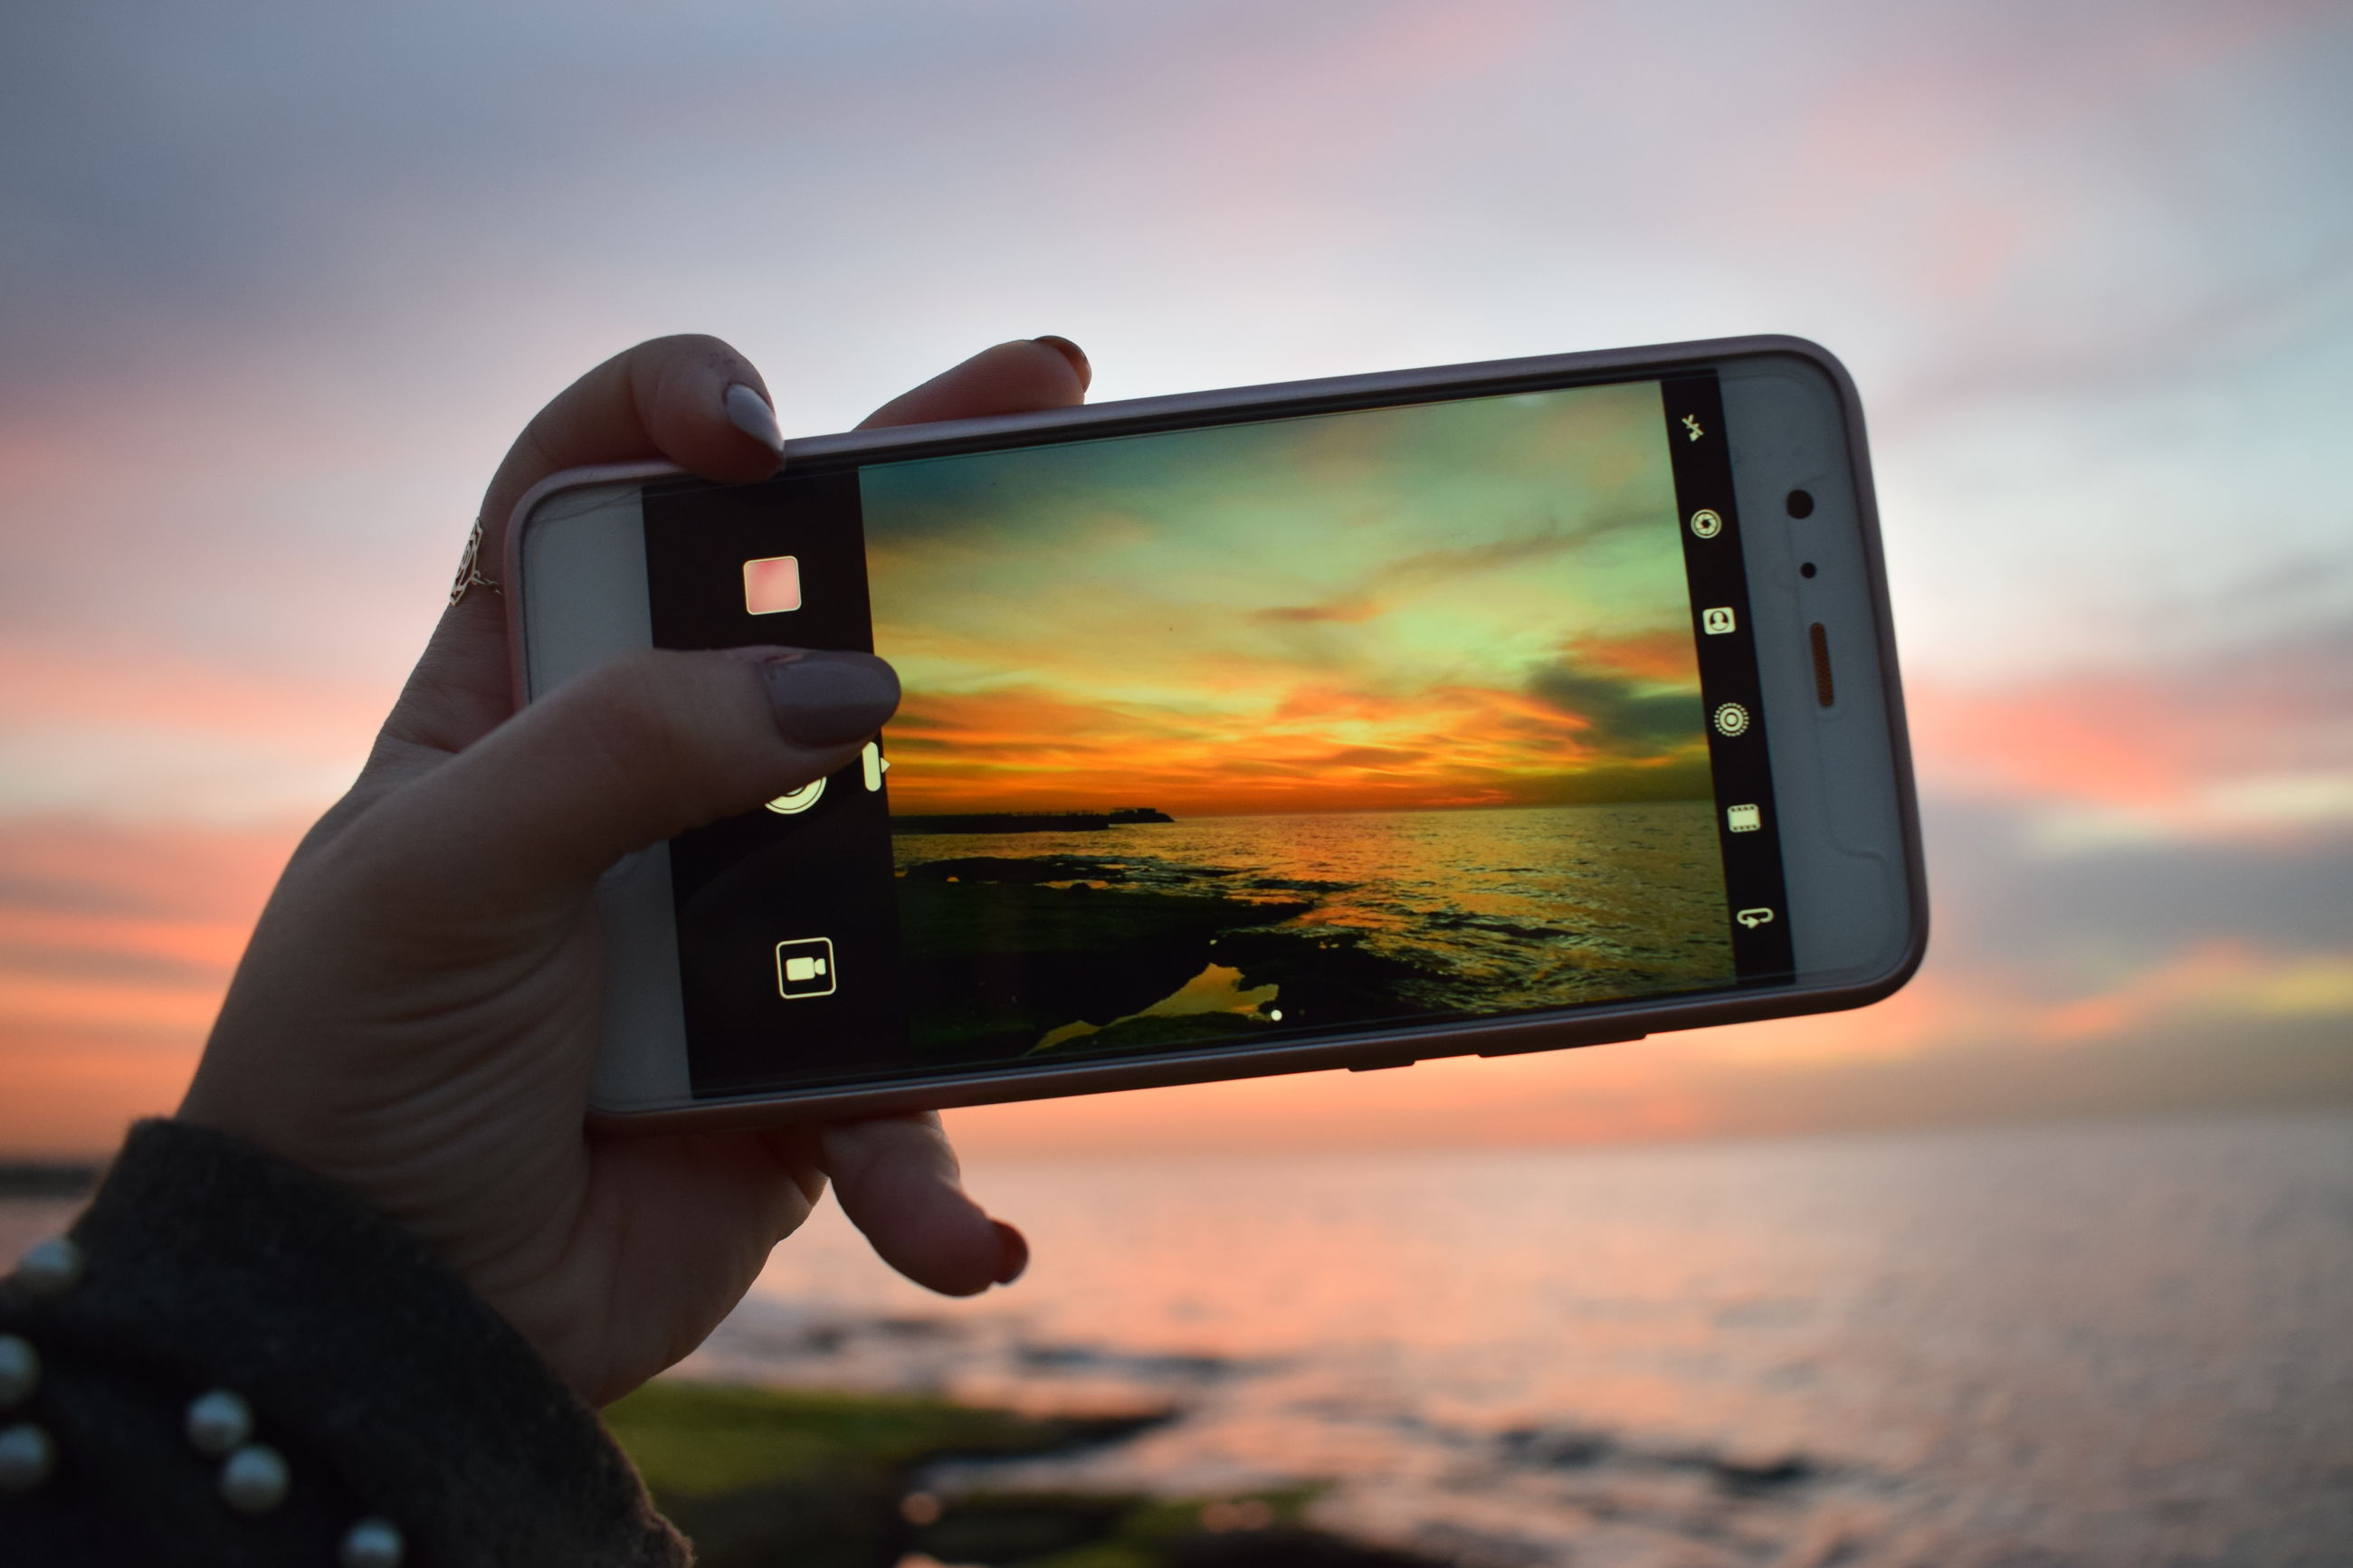 technology, human hand, holding, wireless technology, sunset, hand, one person, photography themes, sky, portable information device, smart phone, mobile phone, communication, human body part, real people, screen, telephone, using phone, photographing, leisure activity, outdoors, digital camera, finger